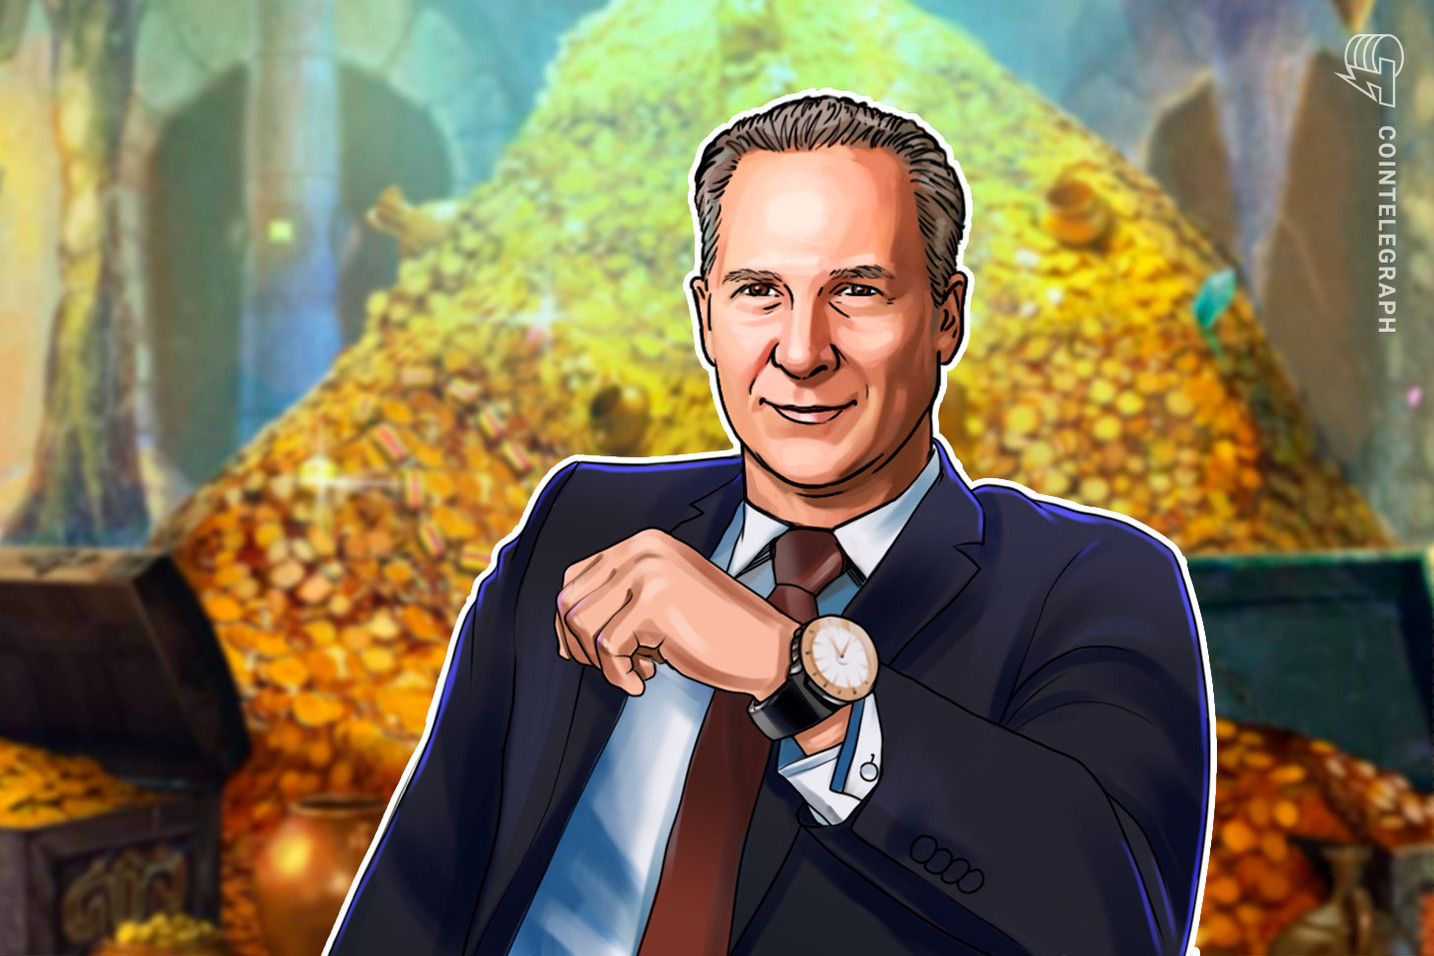 Bitcoin Price 'Will Never Hit $50K,' Gold Bug Peter Schiff Tells Tom Lee